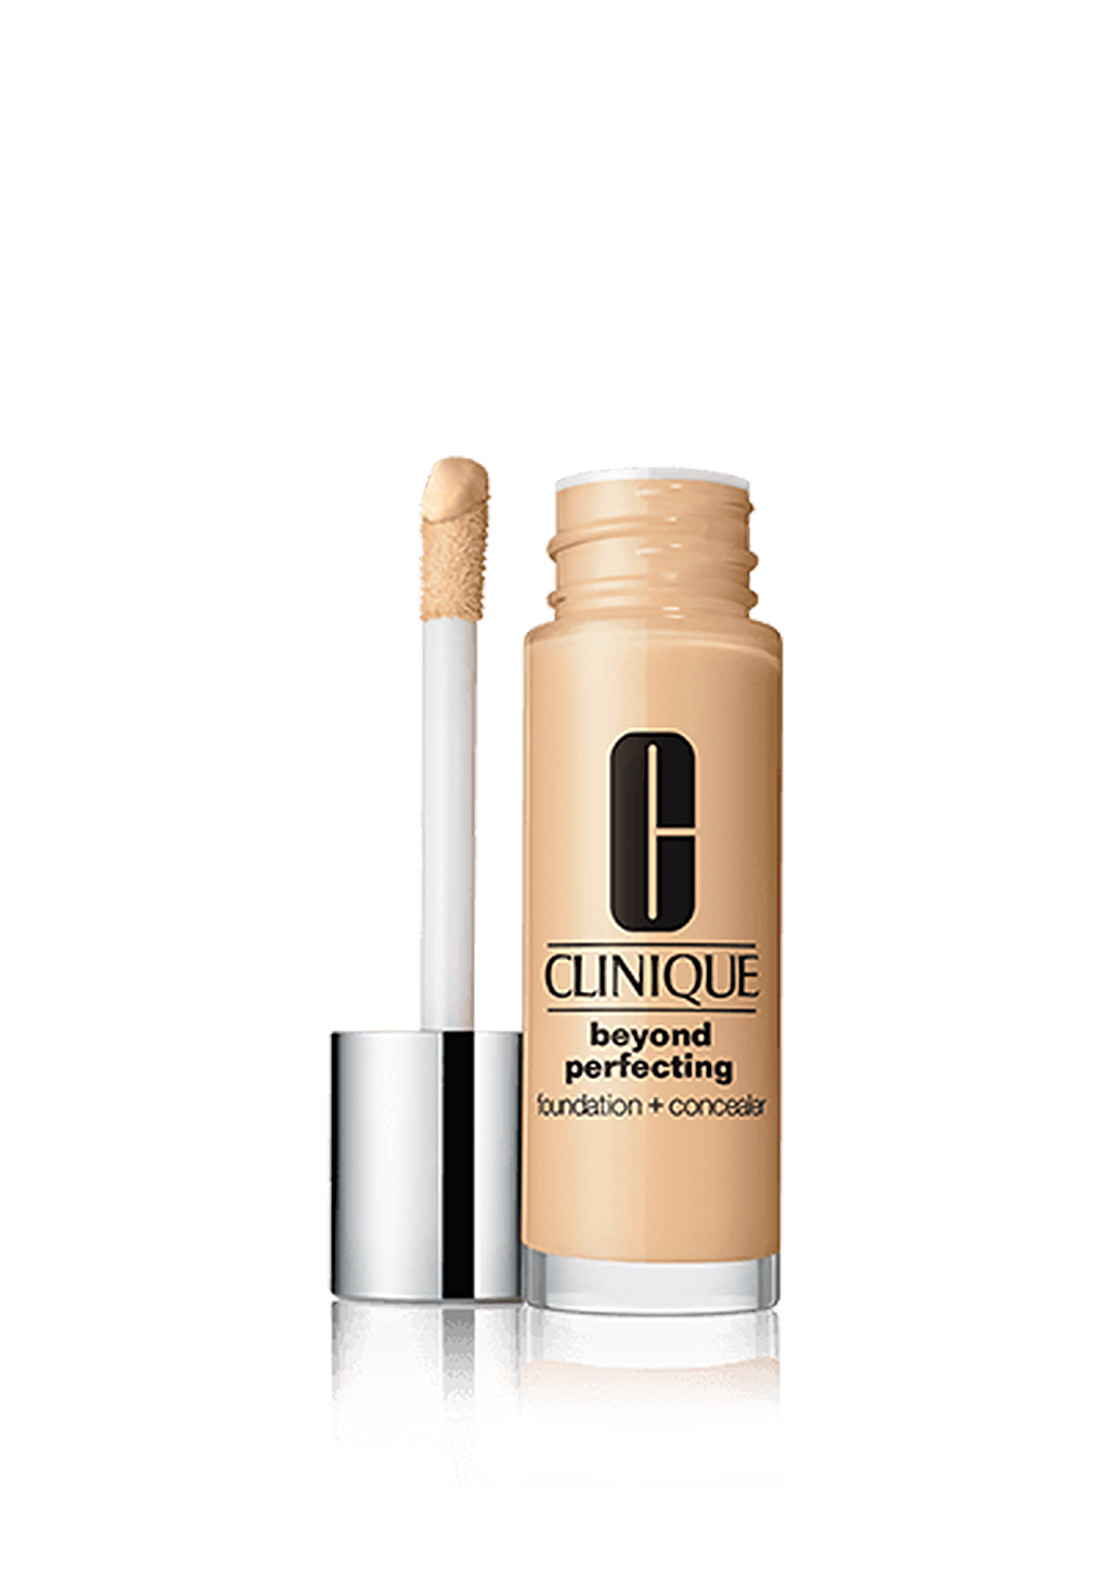 Clinique Beyond Perfecting ™ Foundation and Concealer, Breeze